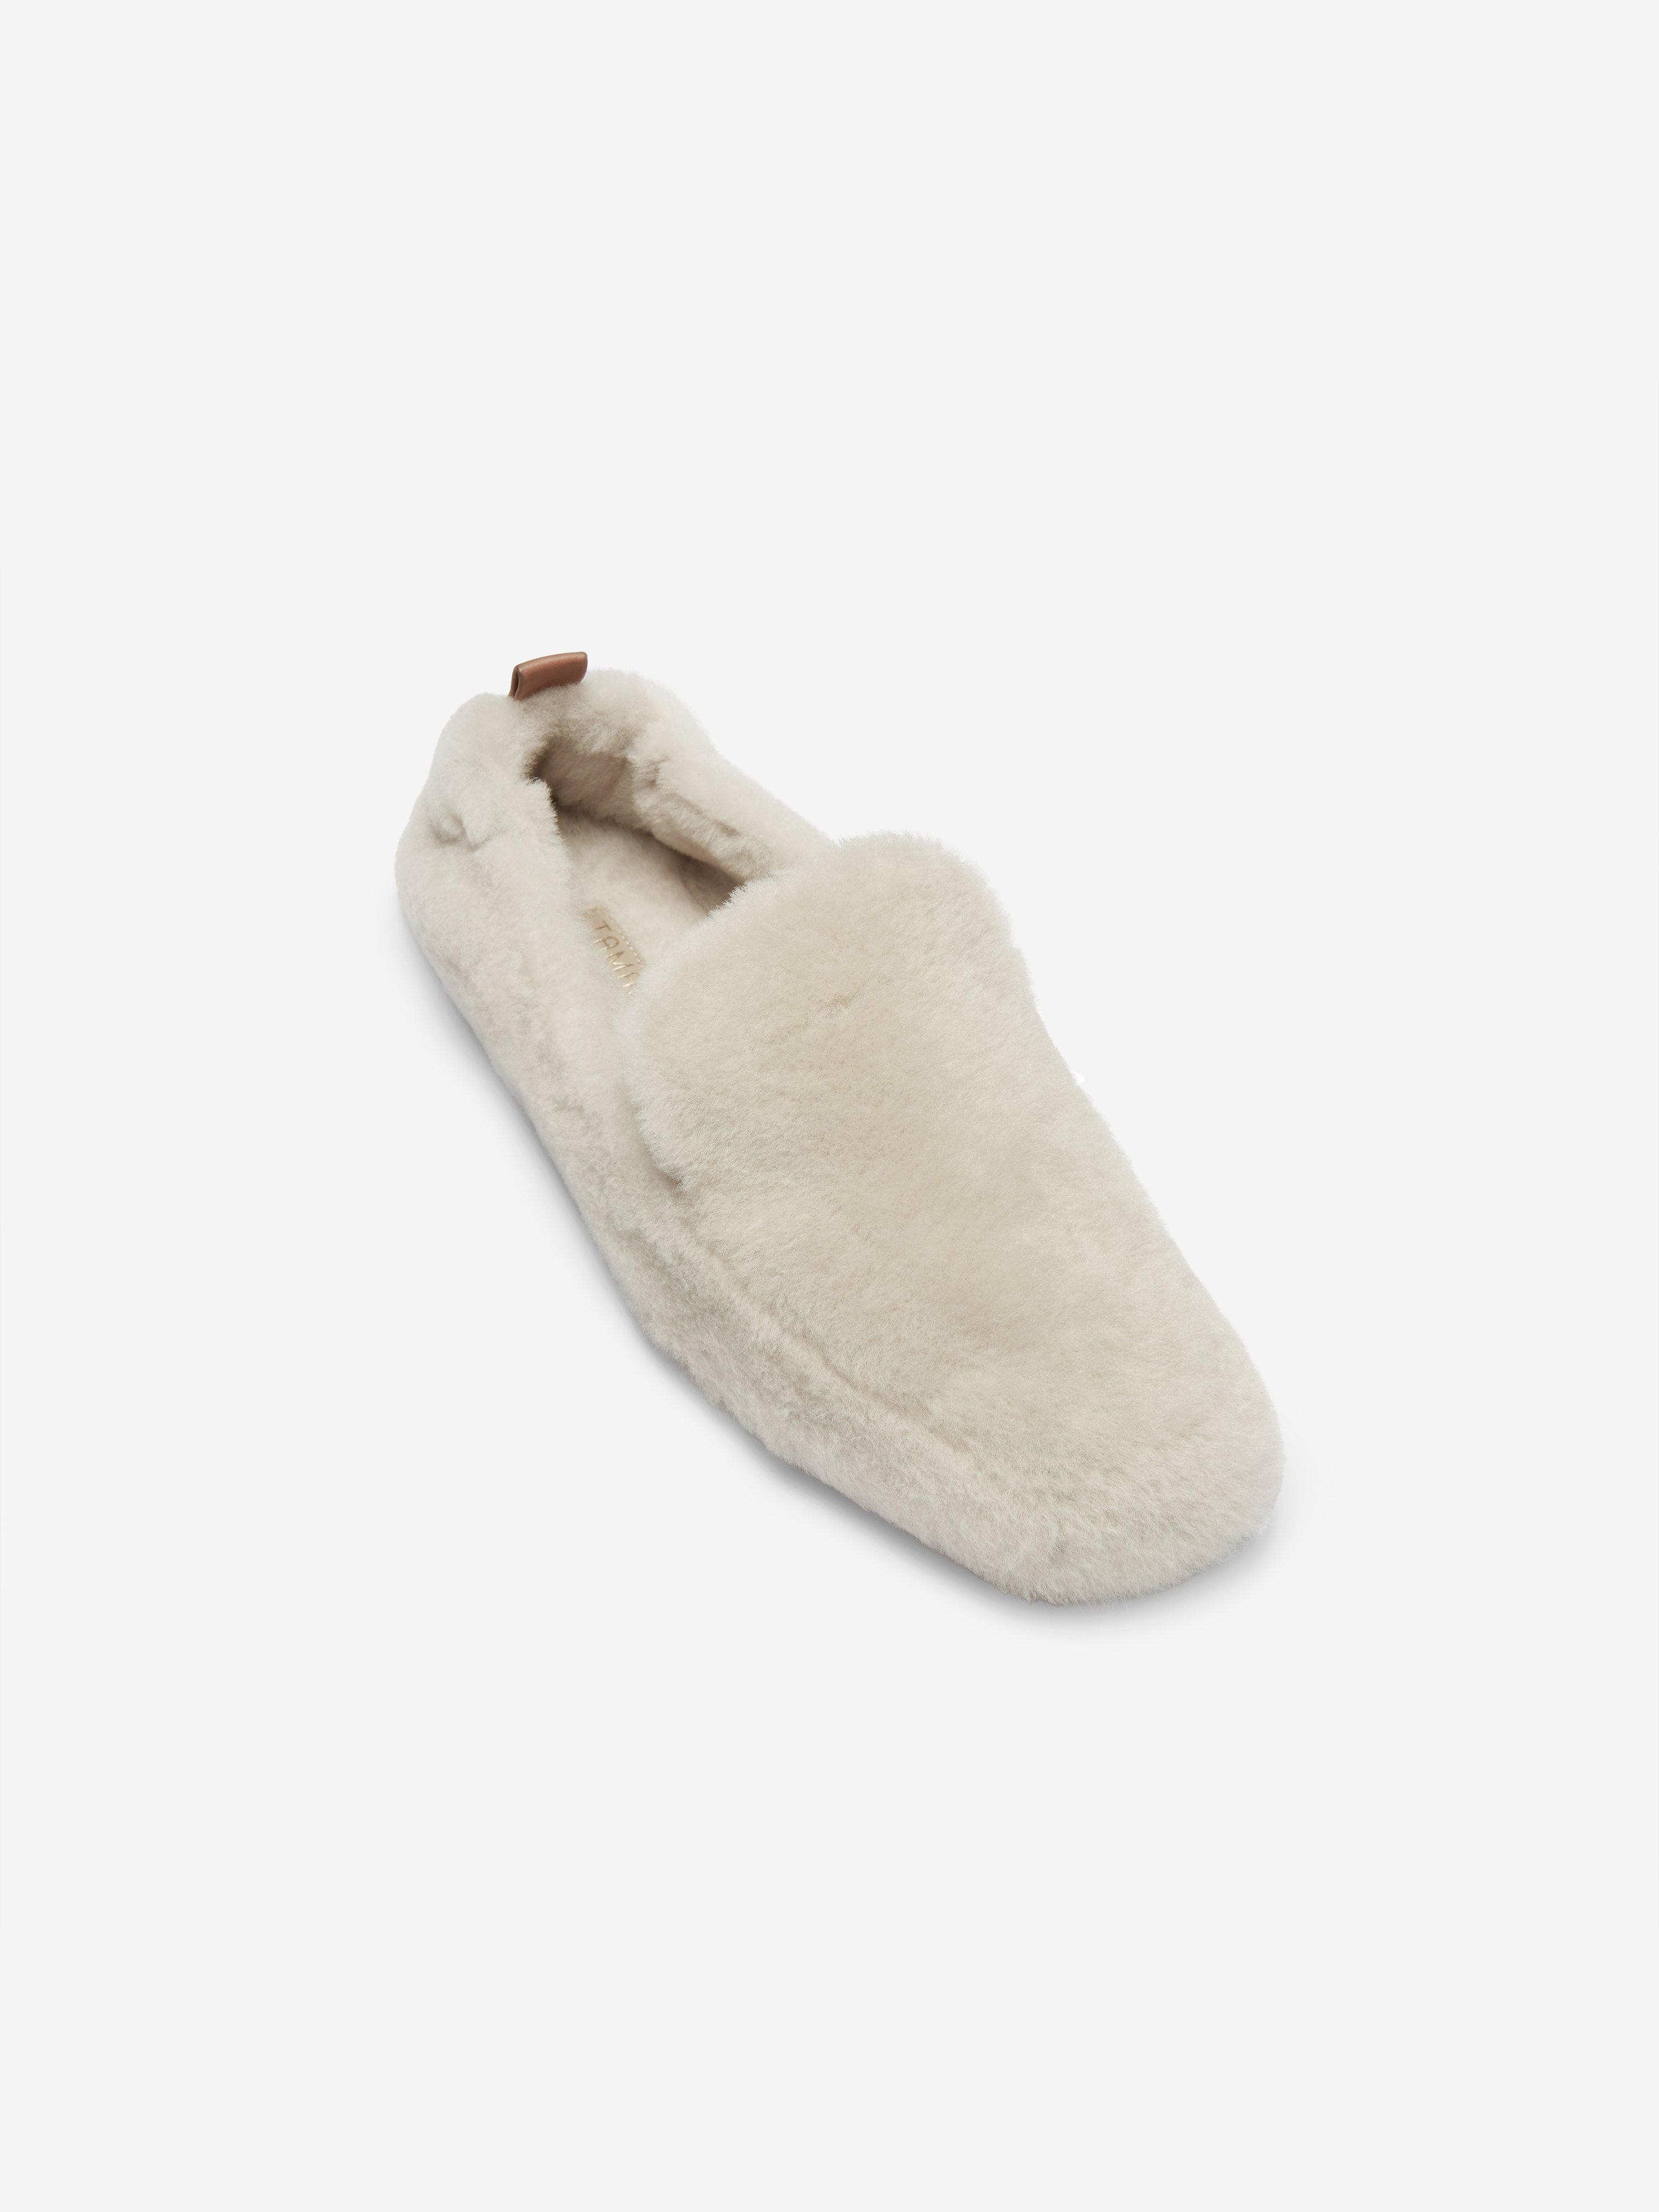 Stow - Shearling 11